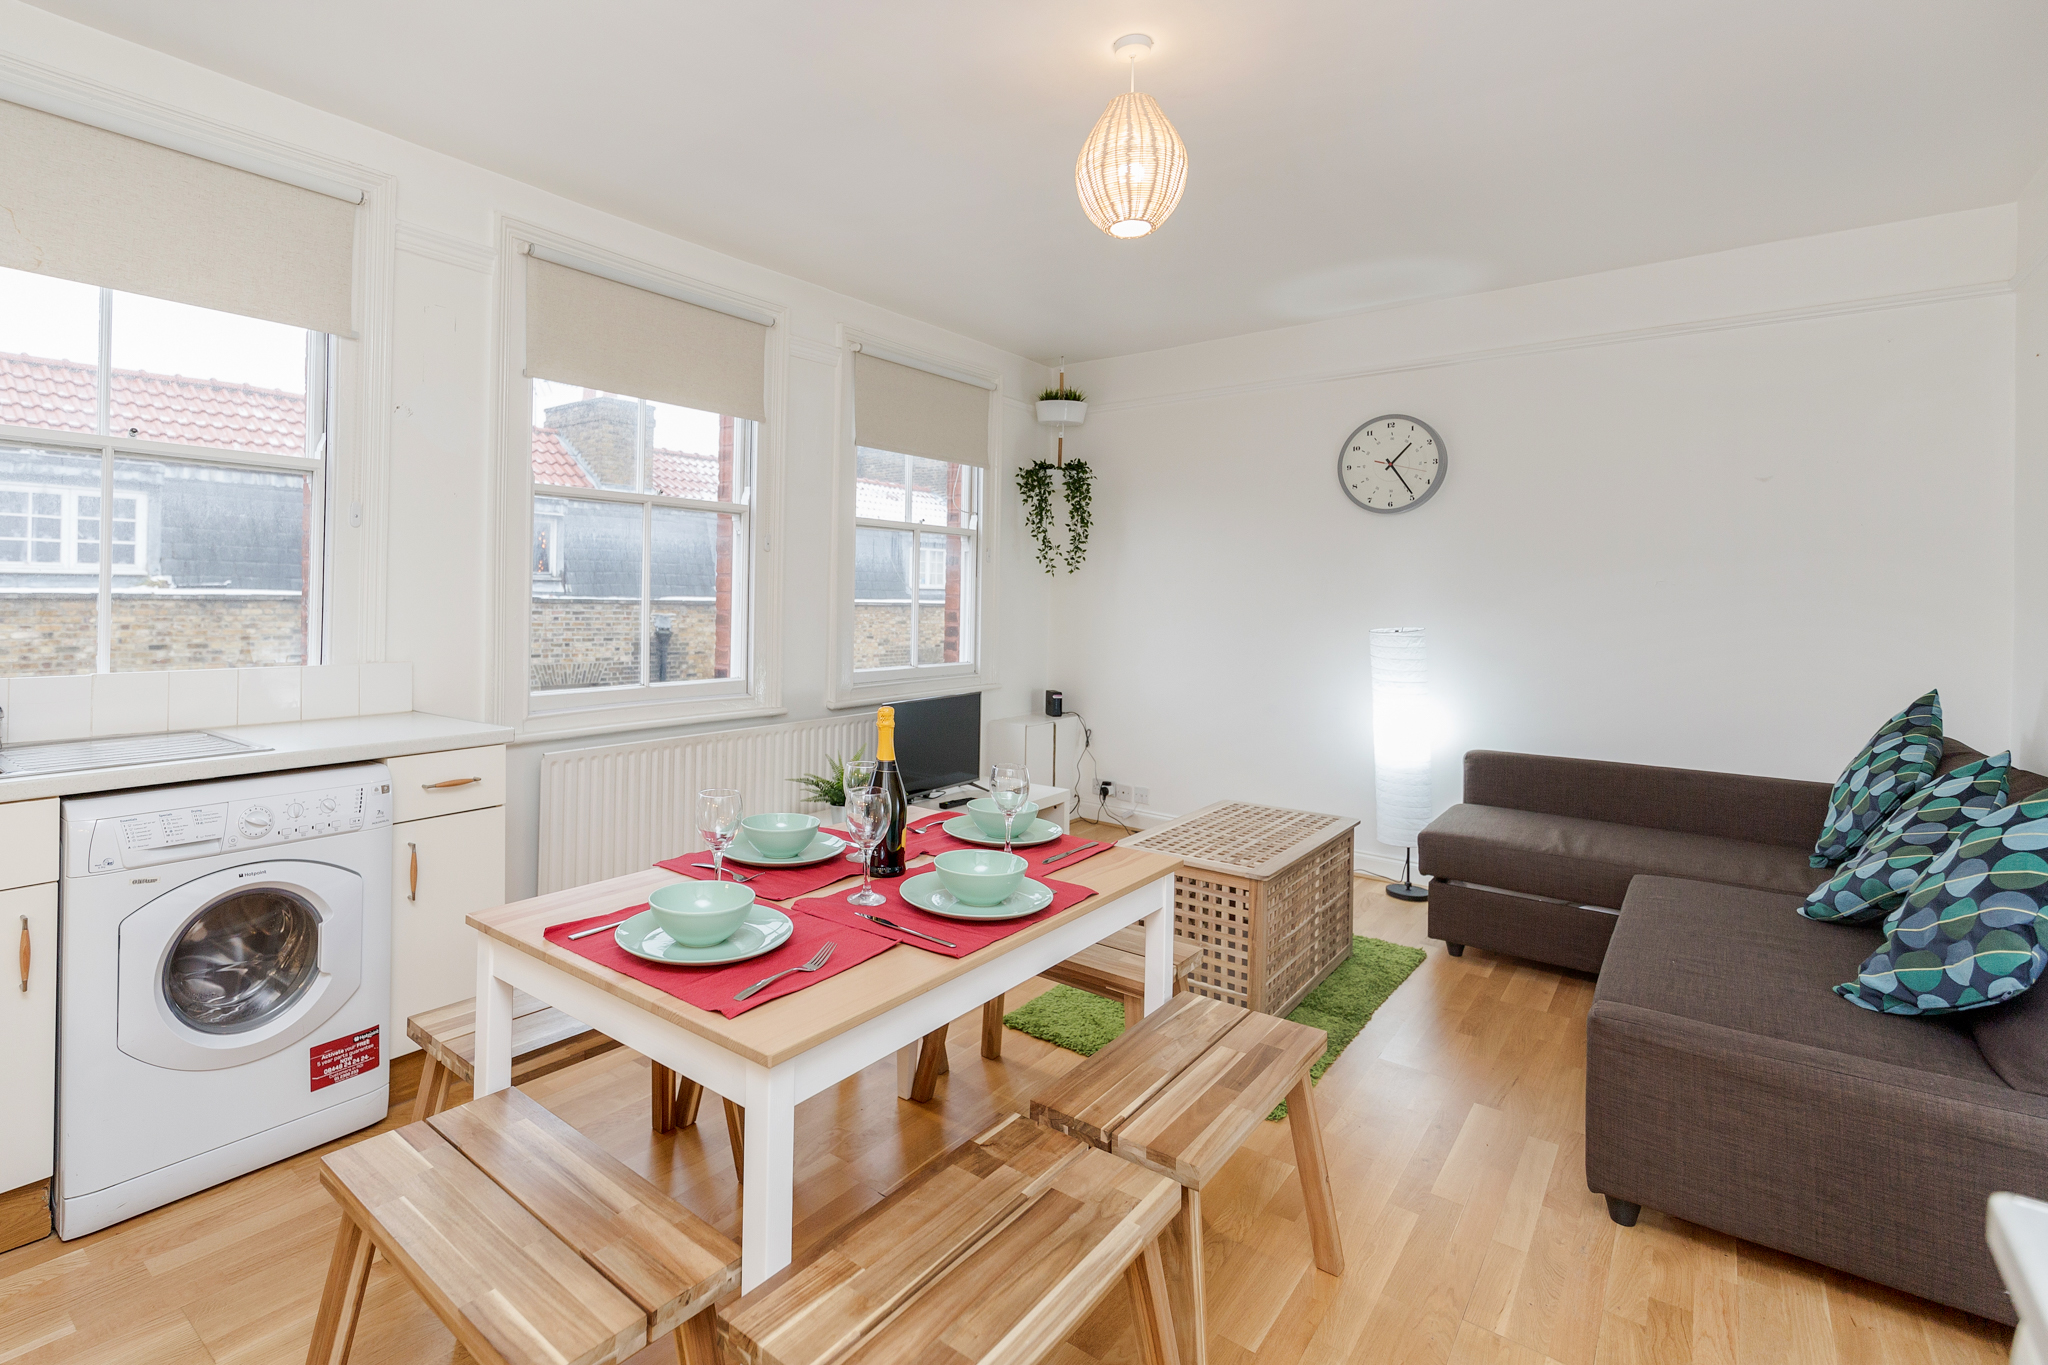 Contemporary East London Style Apartment in the heart of Brick Lane - one Minute from The Truman Brewery  photo 20466984